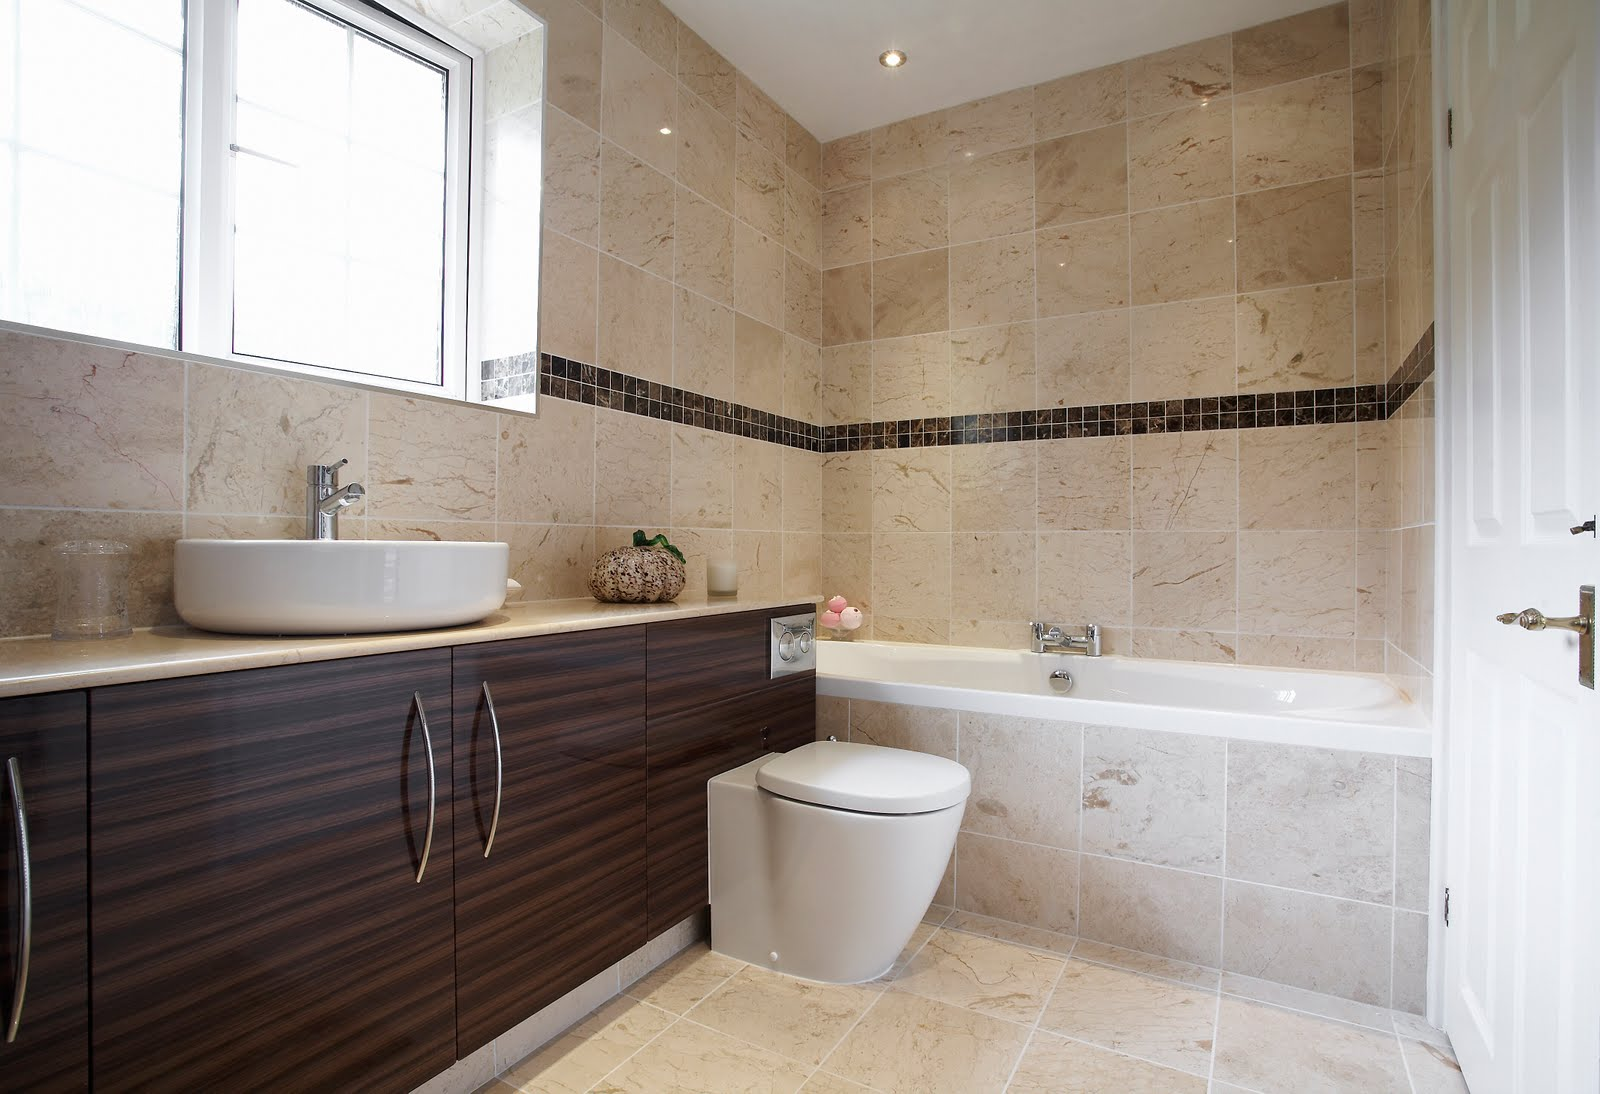 Cymru kitchens ltd cymru kitchens bathrooms - Small bathroom pics ...